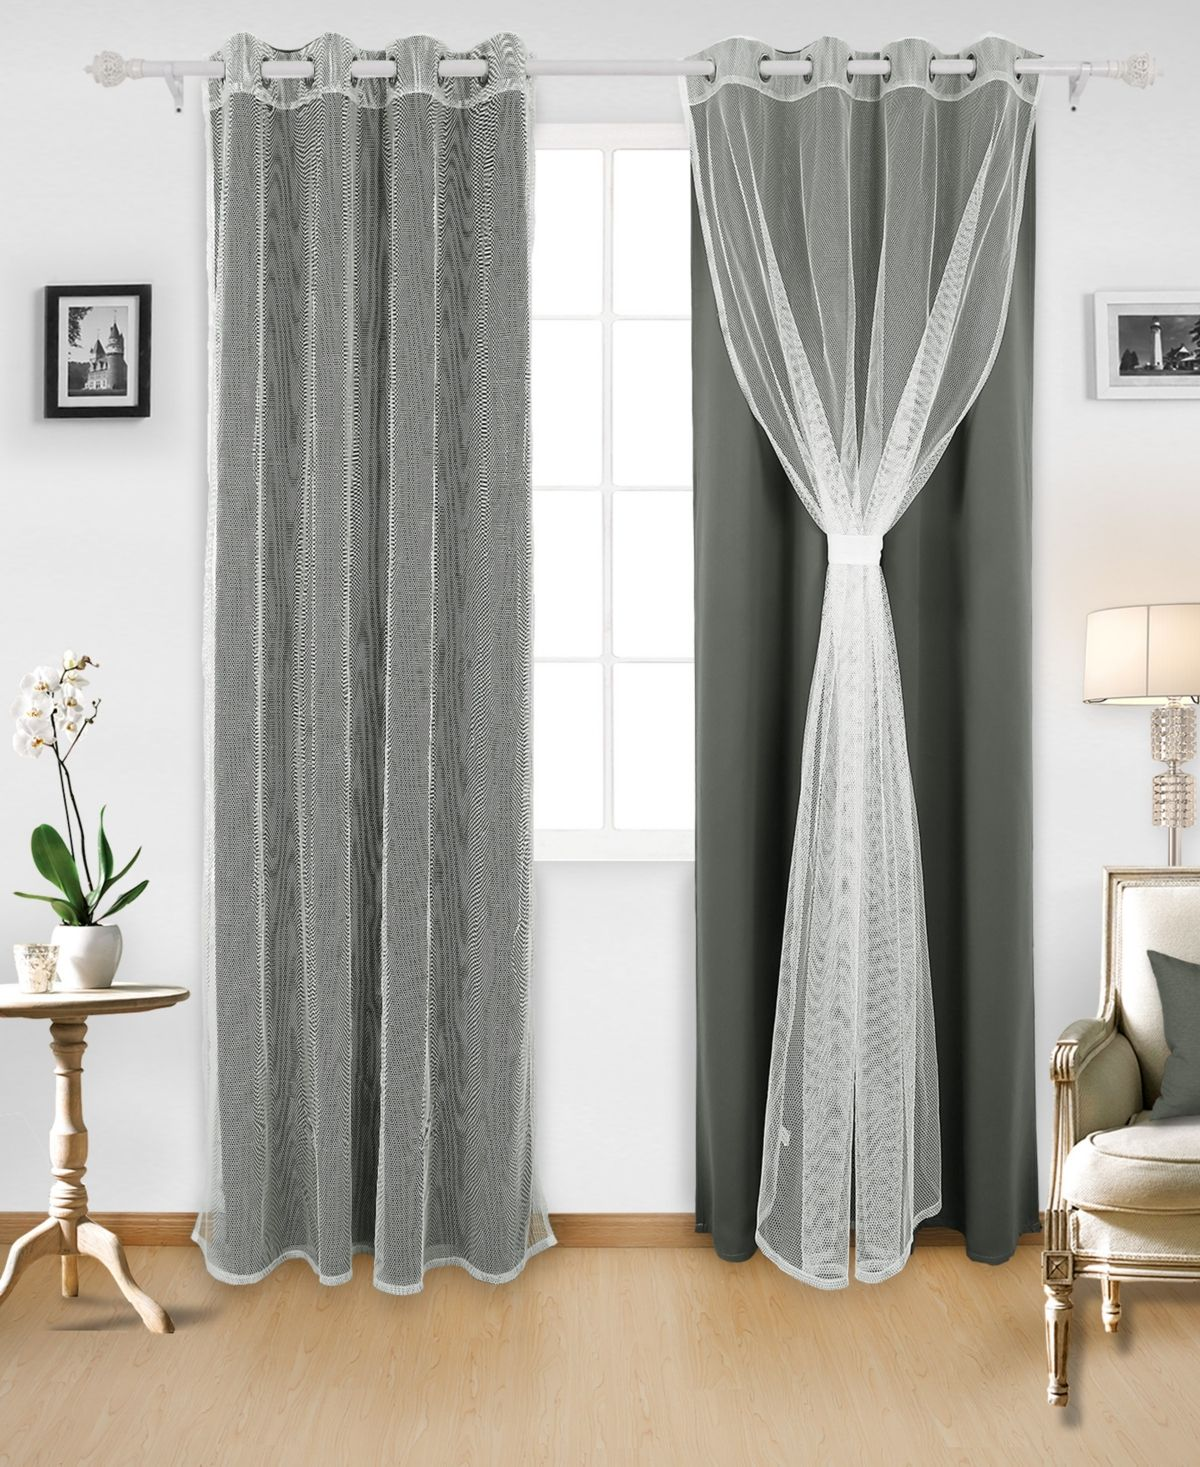 Deconovo Grommet Mix And Match Thermal Insulated Blackout Curtains Reviews Window Treatments Blinds Macy S In 2020 Thermal Insulated Blackout Curtains Insulated Blackout Curtains Curtains